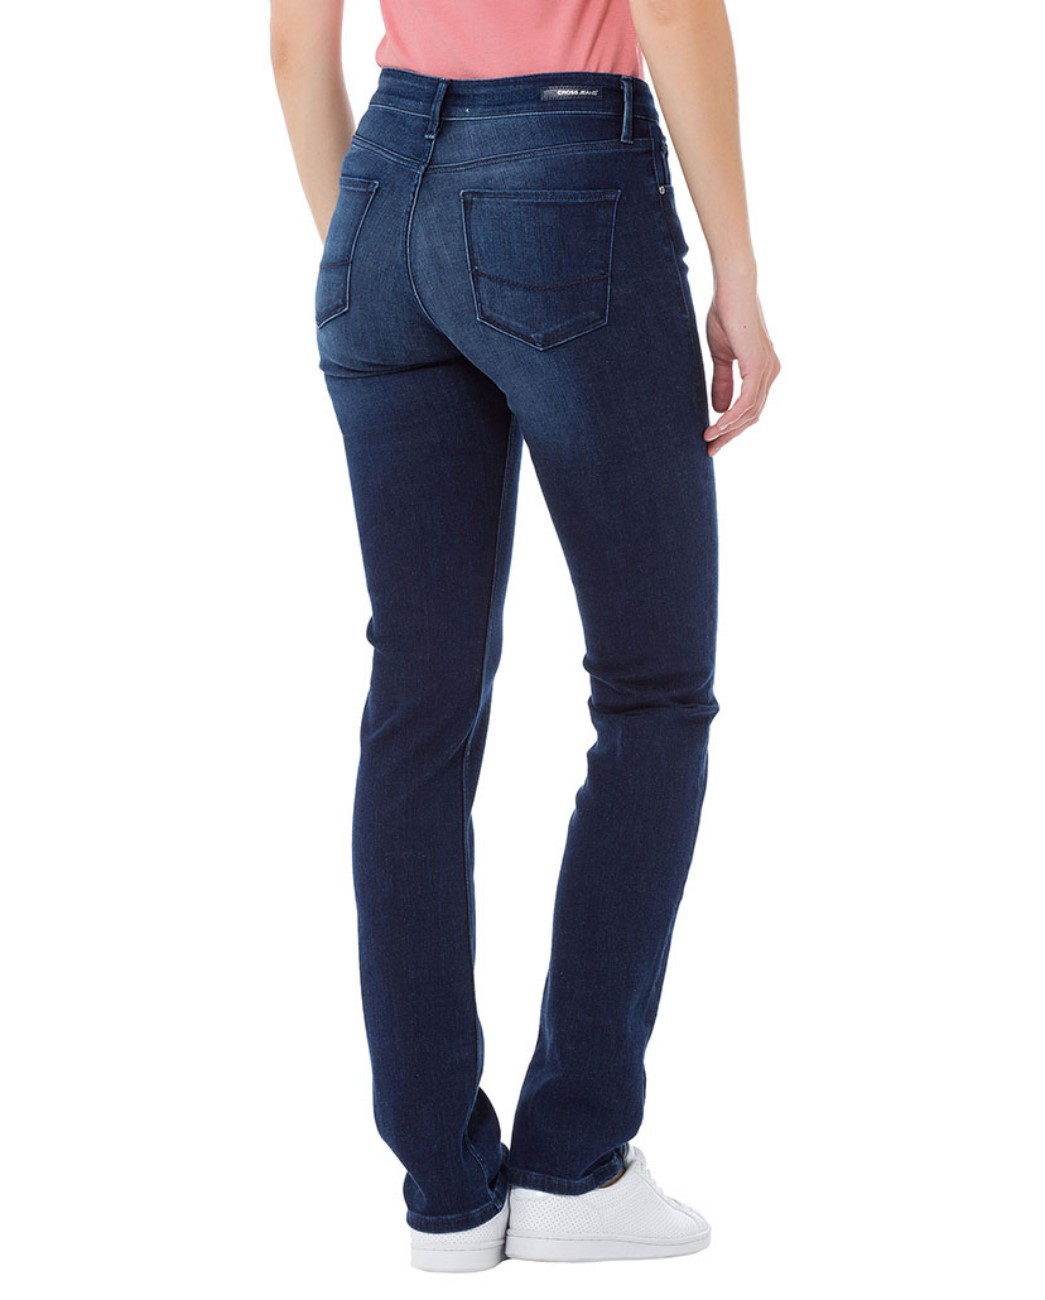 Cross Damen Jeans Anya - Slim Fit - Blau - Dark Mid Blue